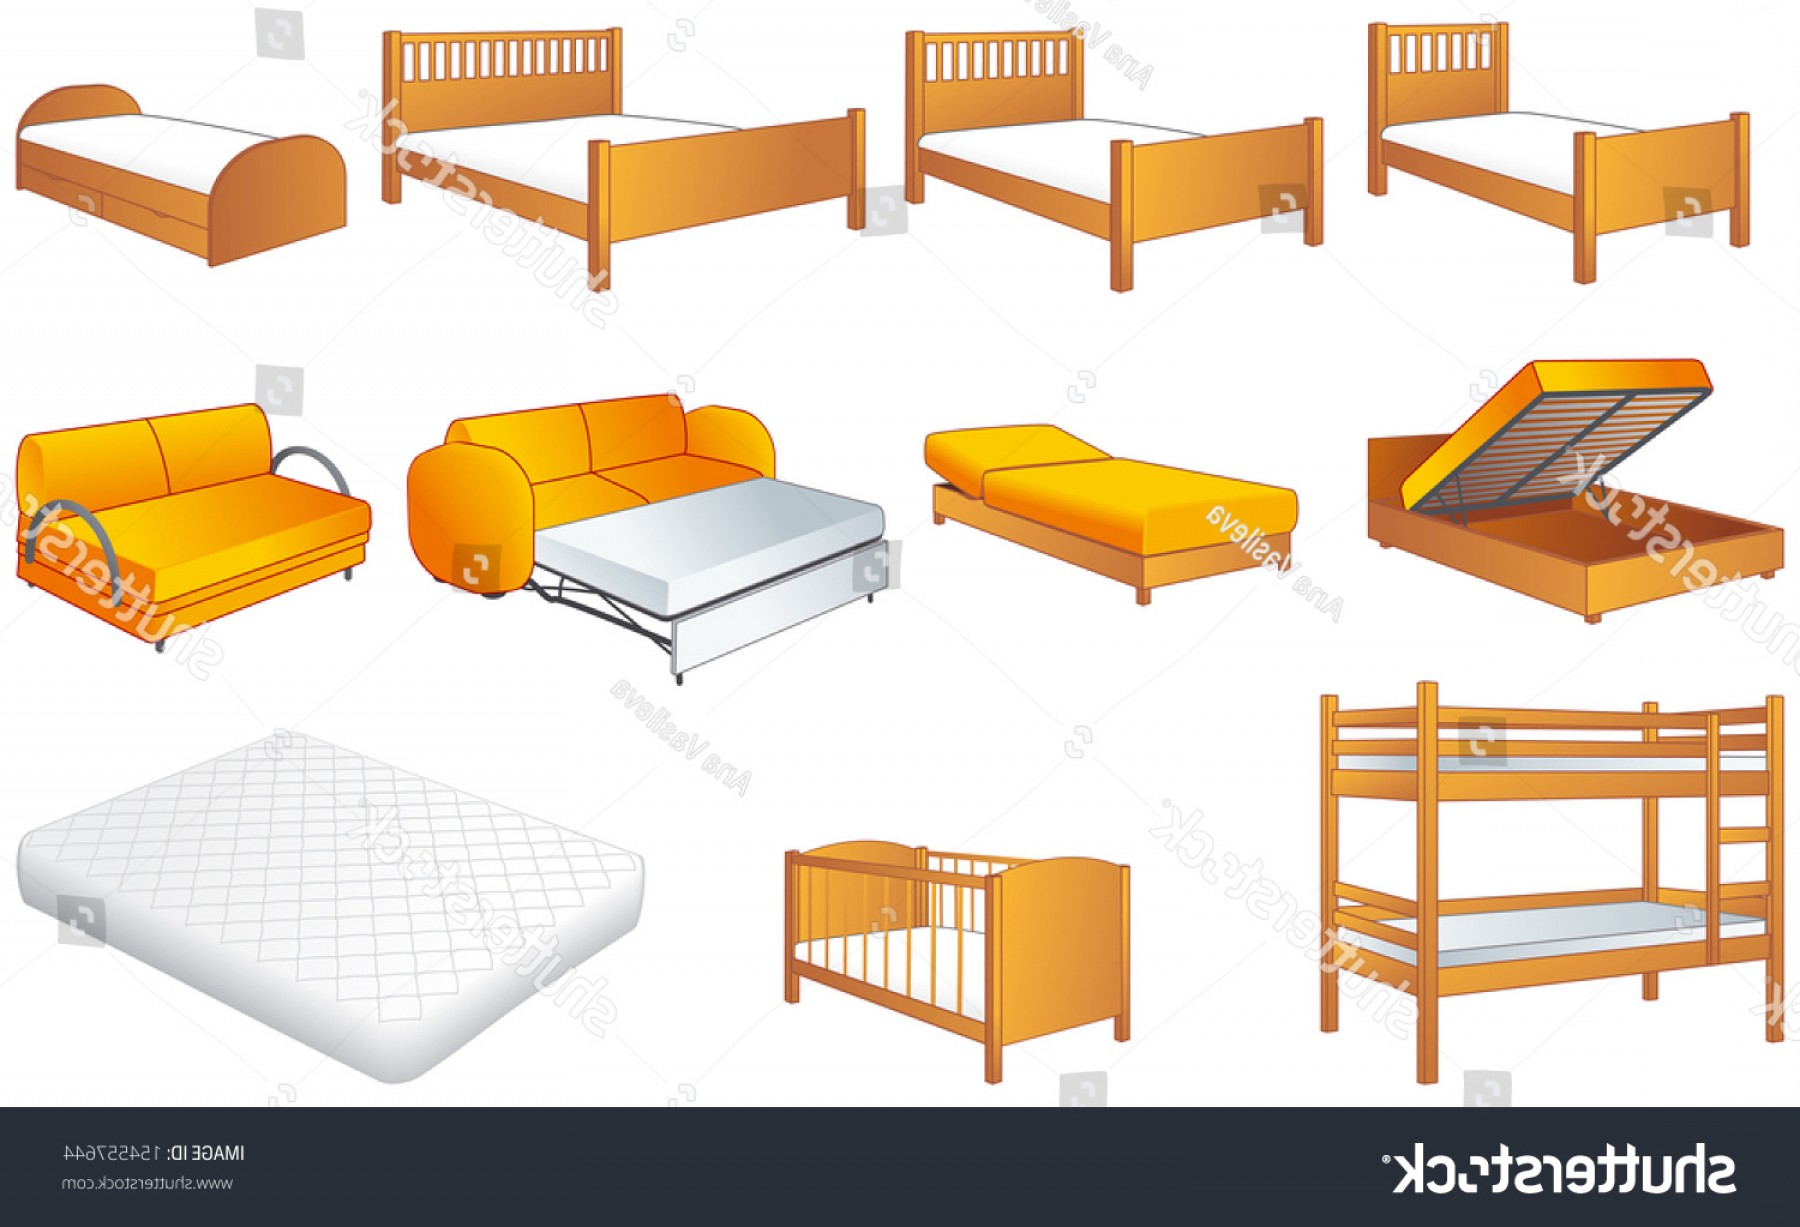 Back Of The Couch Vector: Various Bedroom Furniture Bed Cot Couch